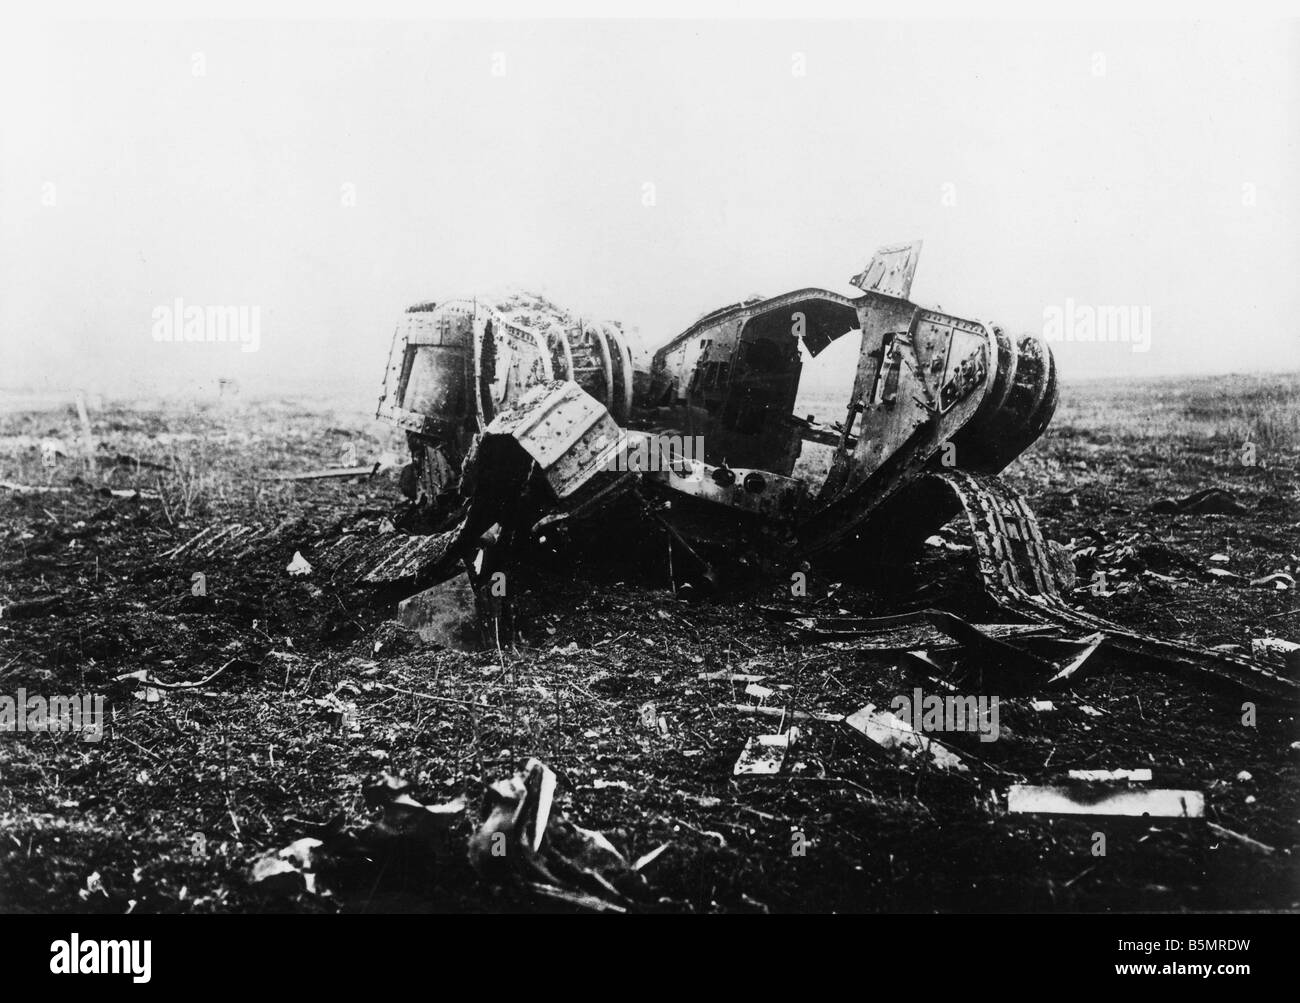 9 1917 11 20 A2 11 E Destroyed English tank Nov 1917 World War 1 1914 18 Western Front Tank battle at Cambrai 20th - Stock Image